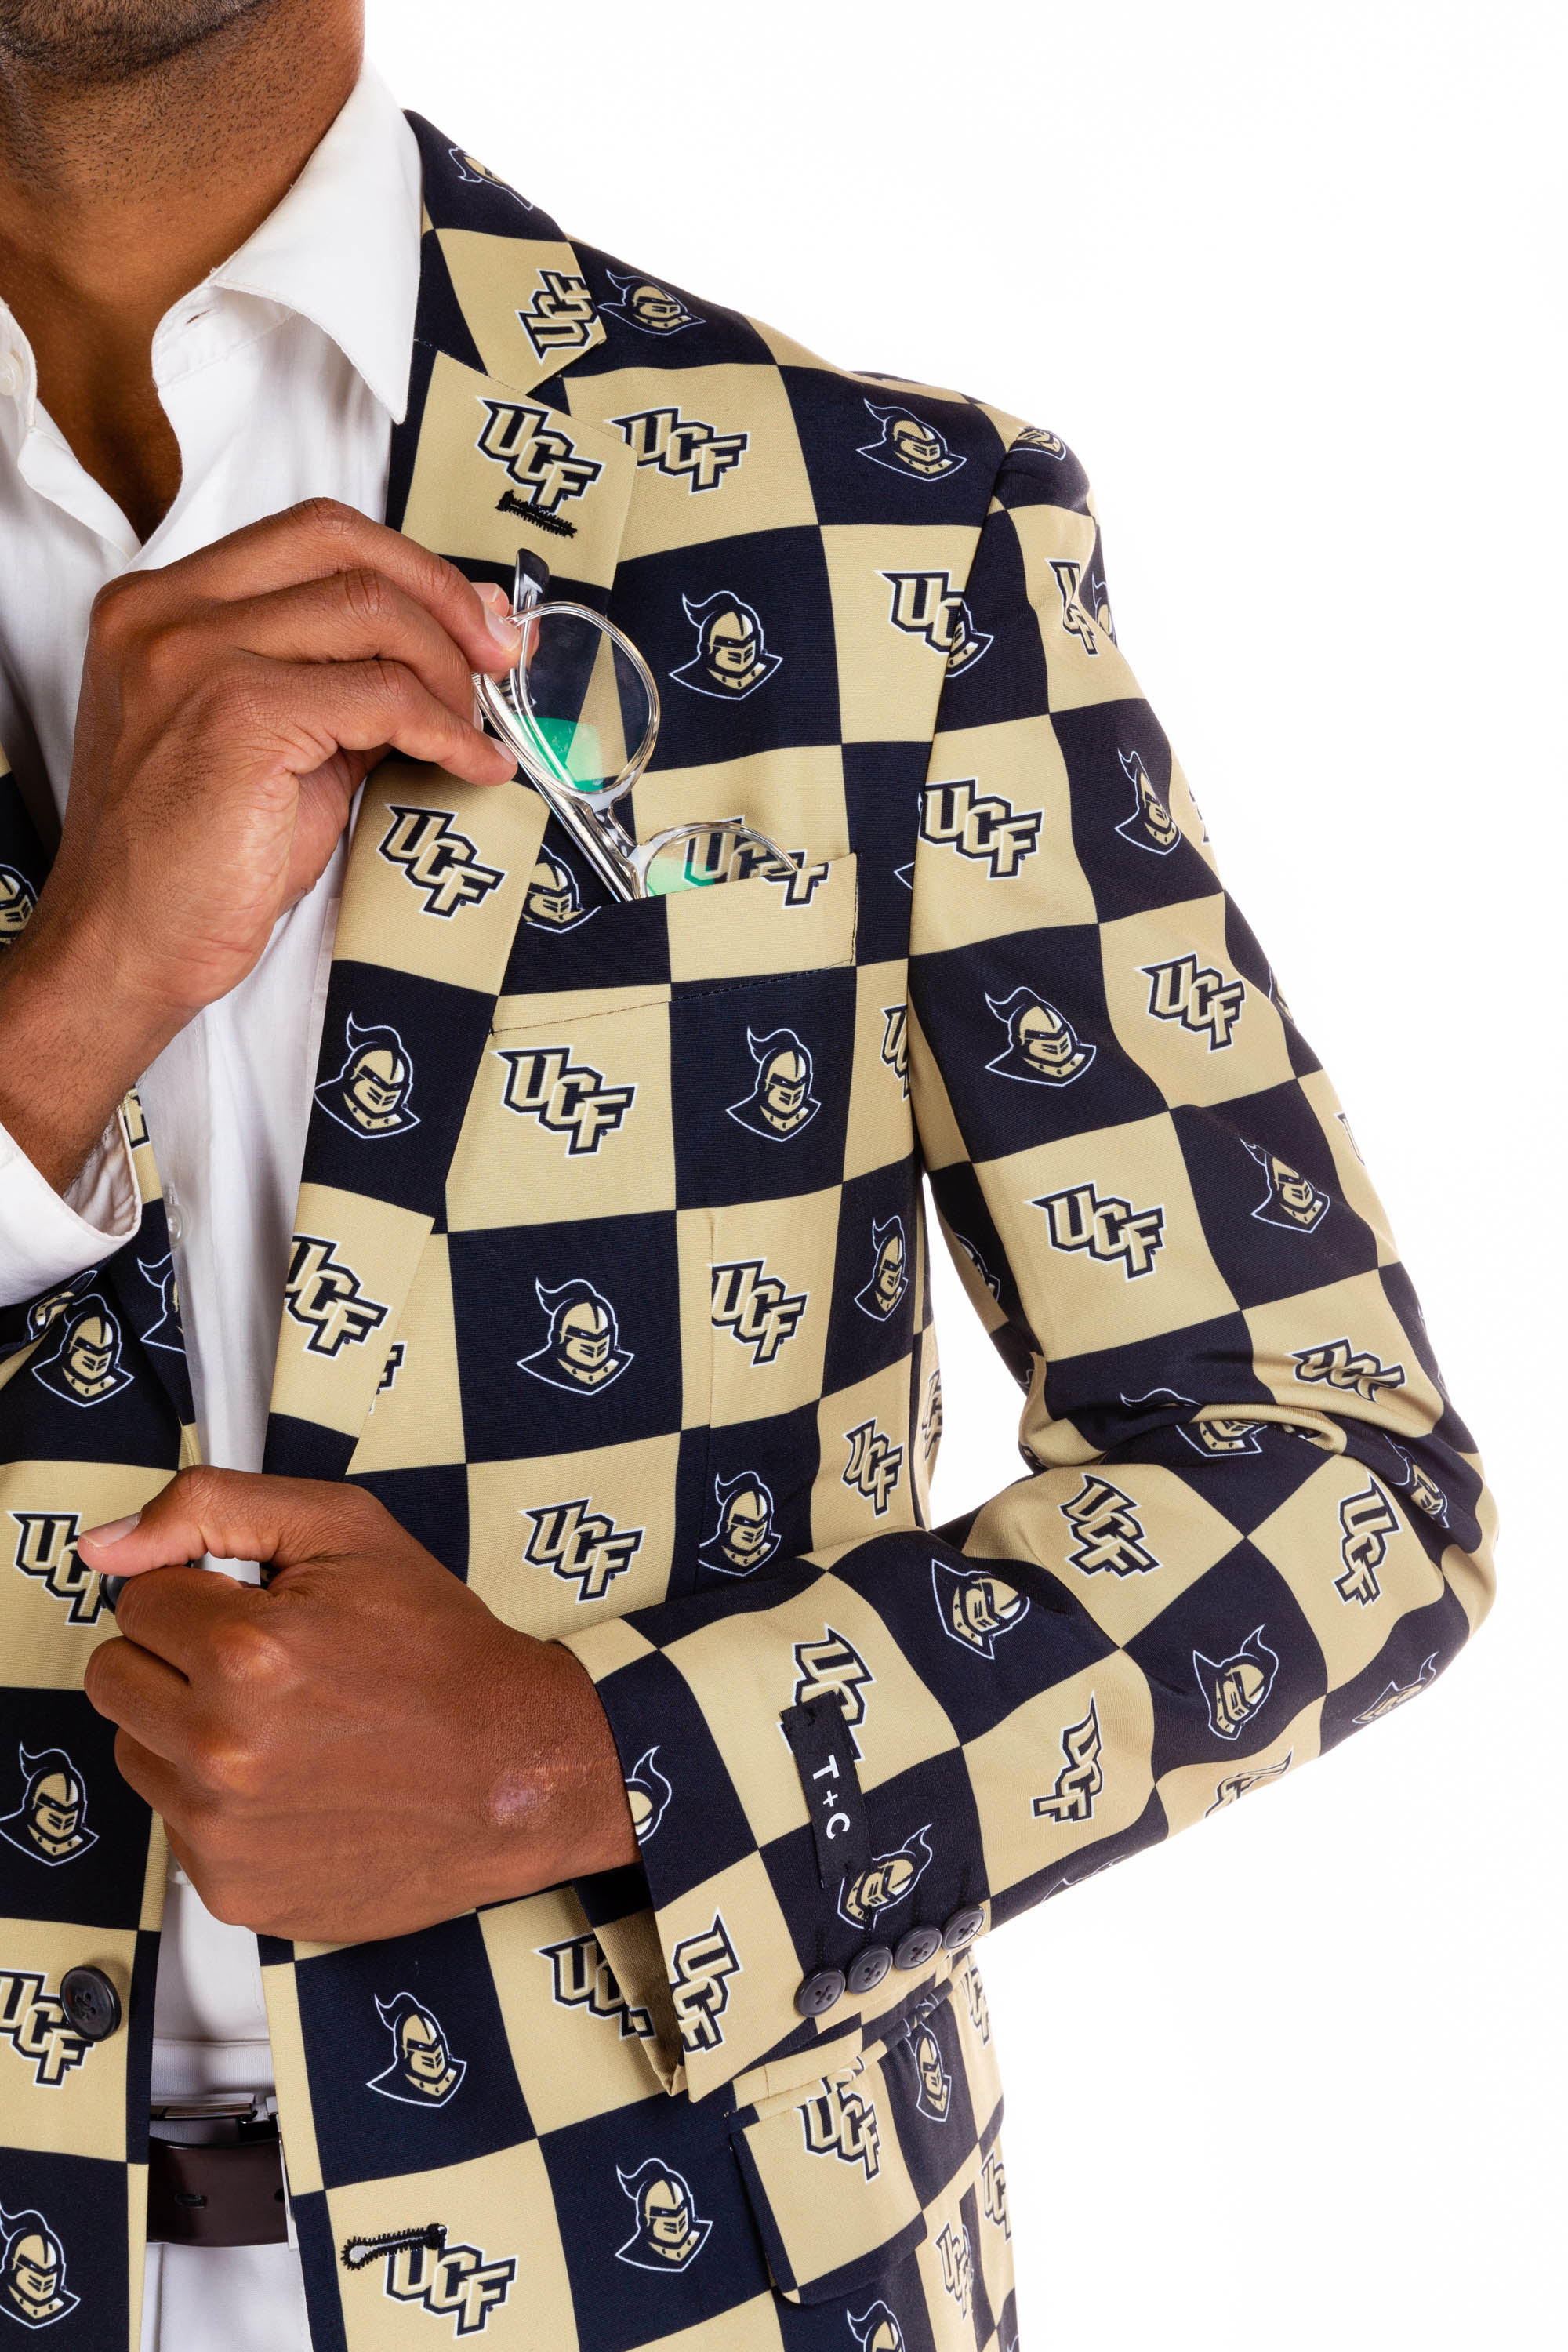 University of Central Florida Blazer Detail